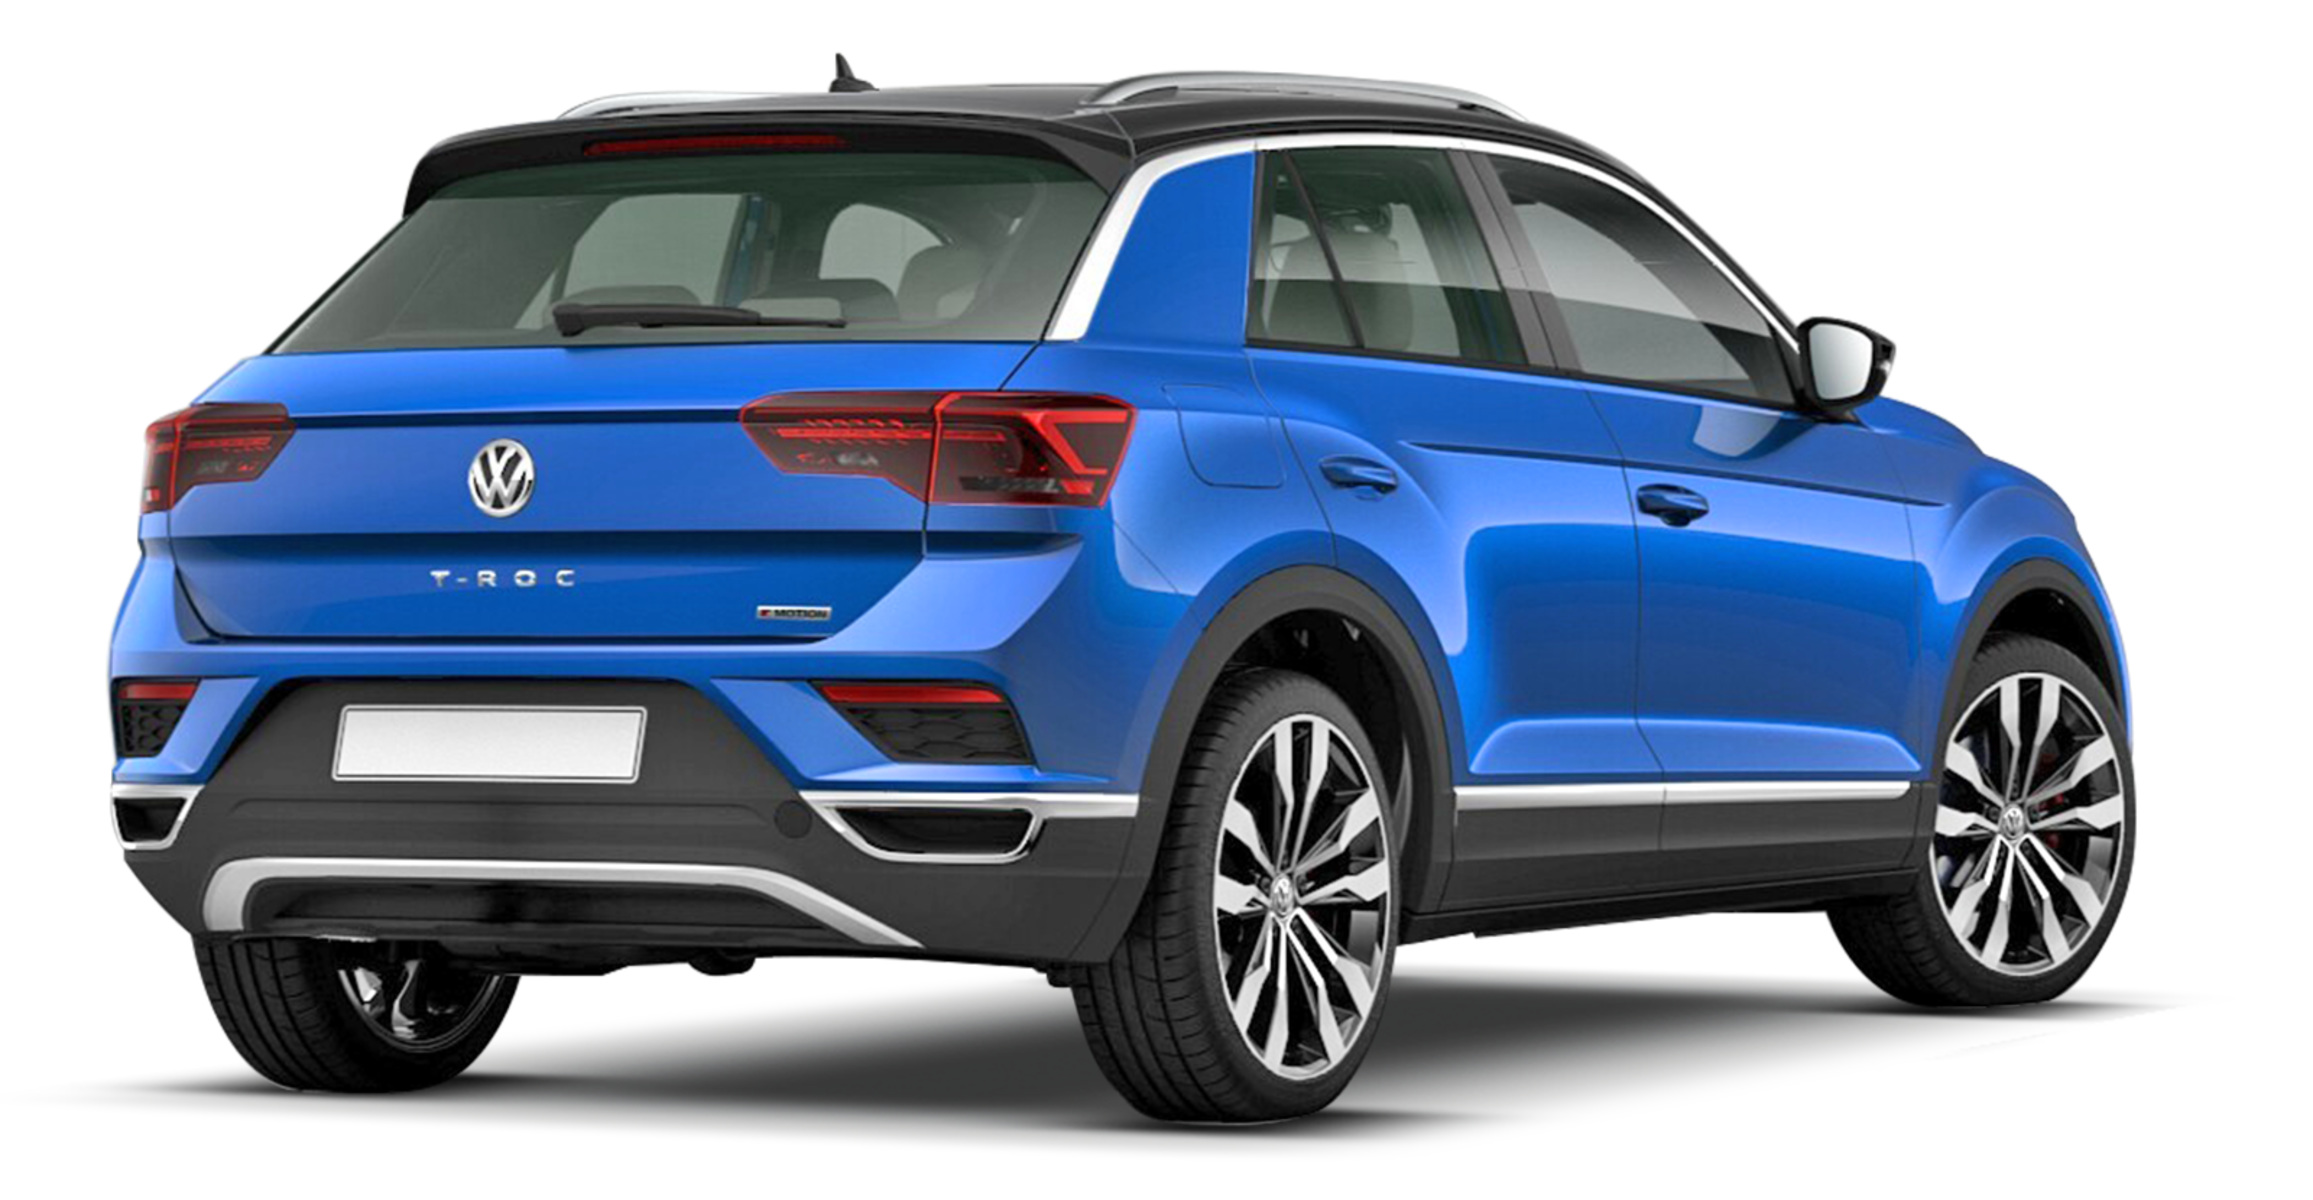 volkswagen t roc tarif 2018 vw t roc price specs and release date carwow 2016 volkswagen t roc. Black Bedroom Furniture Sets. Home Design Ideas